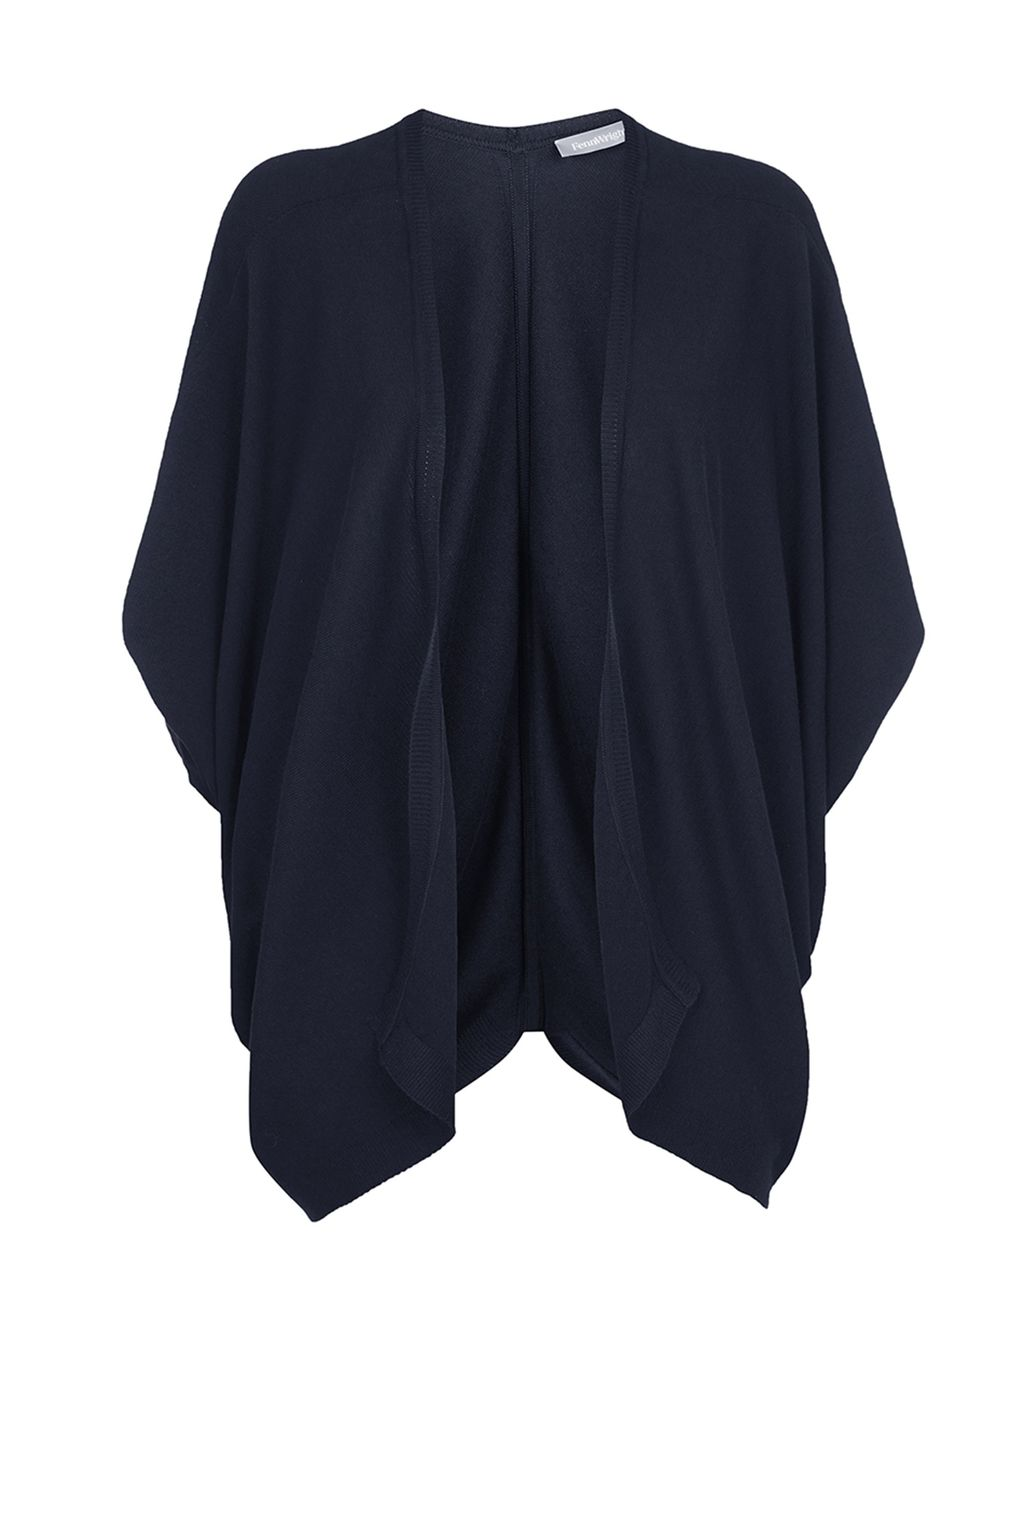 Petula Cardigan, Navy - sleeve style: dolman/batwing; pattern: plain; length: below the bottom; neckline: collarless open; style: open front; predominant colour: navy; occasions: casual, creative work; fibres: linen - mix; fit: loose; sleeve length: 3/4 length; texture group: knits/crochet; pattern type: fabric; season: s/s 2015; wardrobe: basic